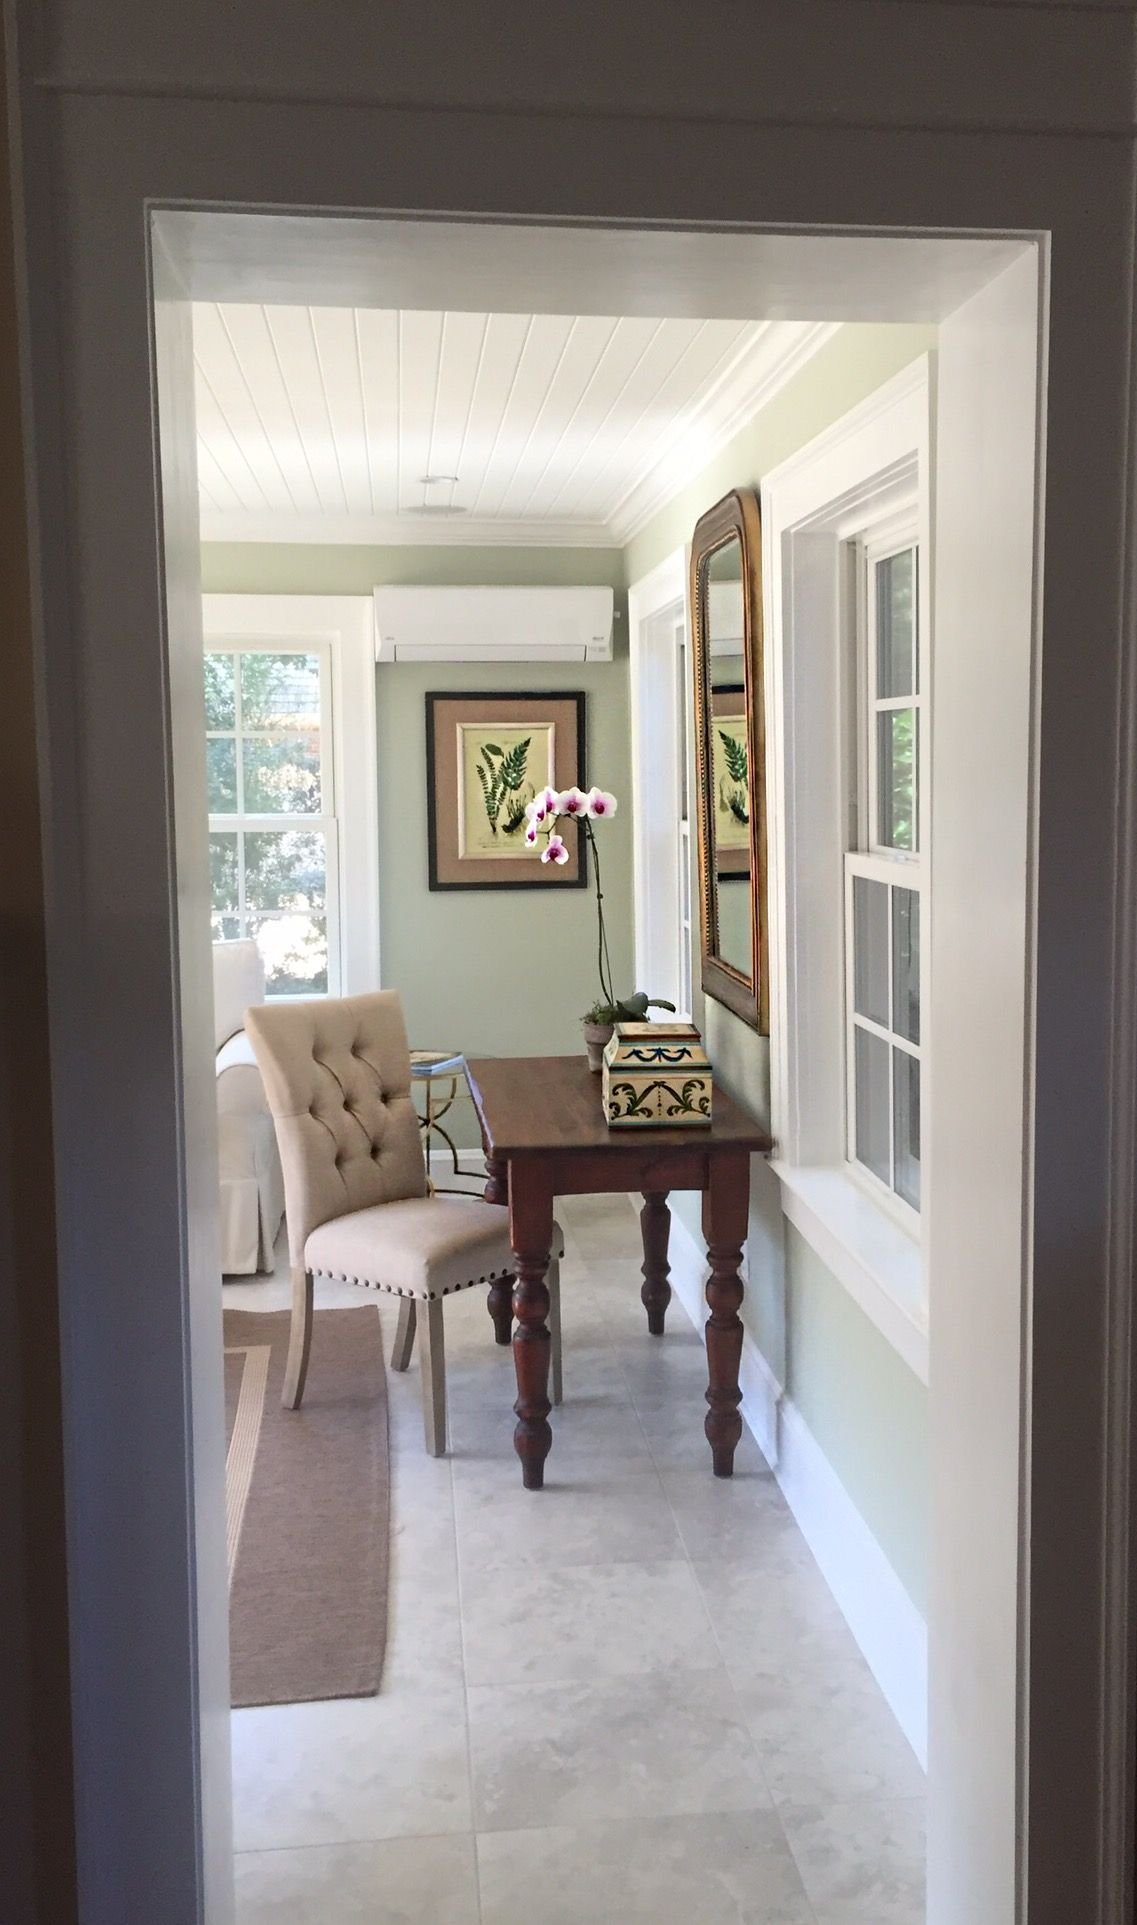 T Designs Remodeled Sunroom Paint Sherwin Williams Liveable Green Living Room Green Home Decor Home